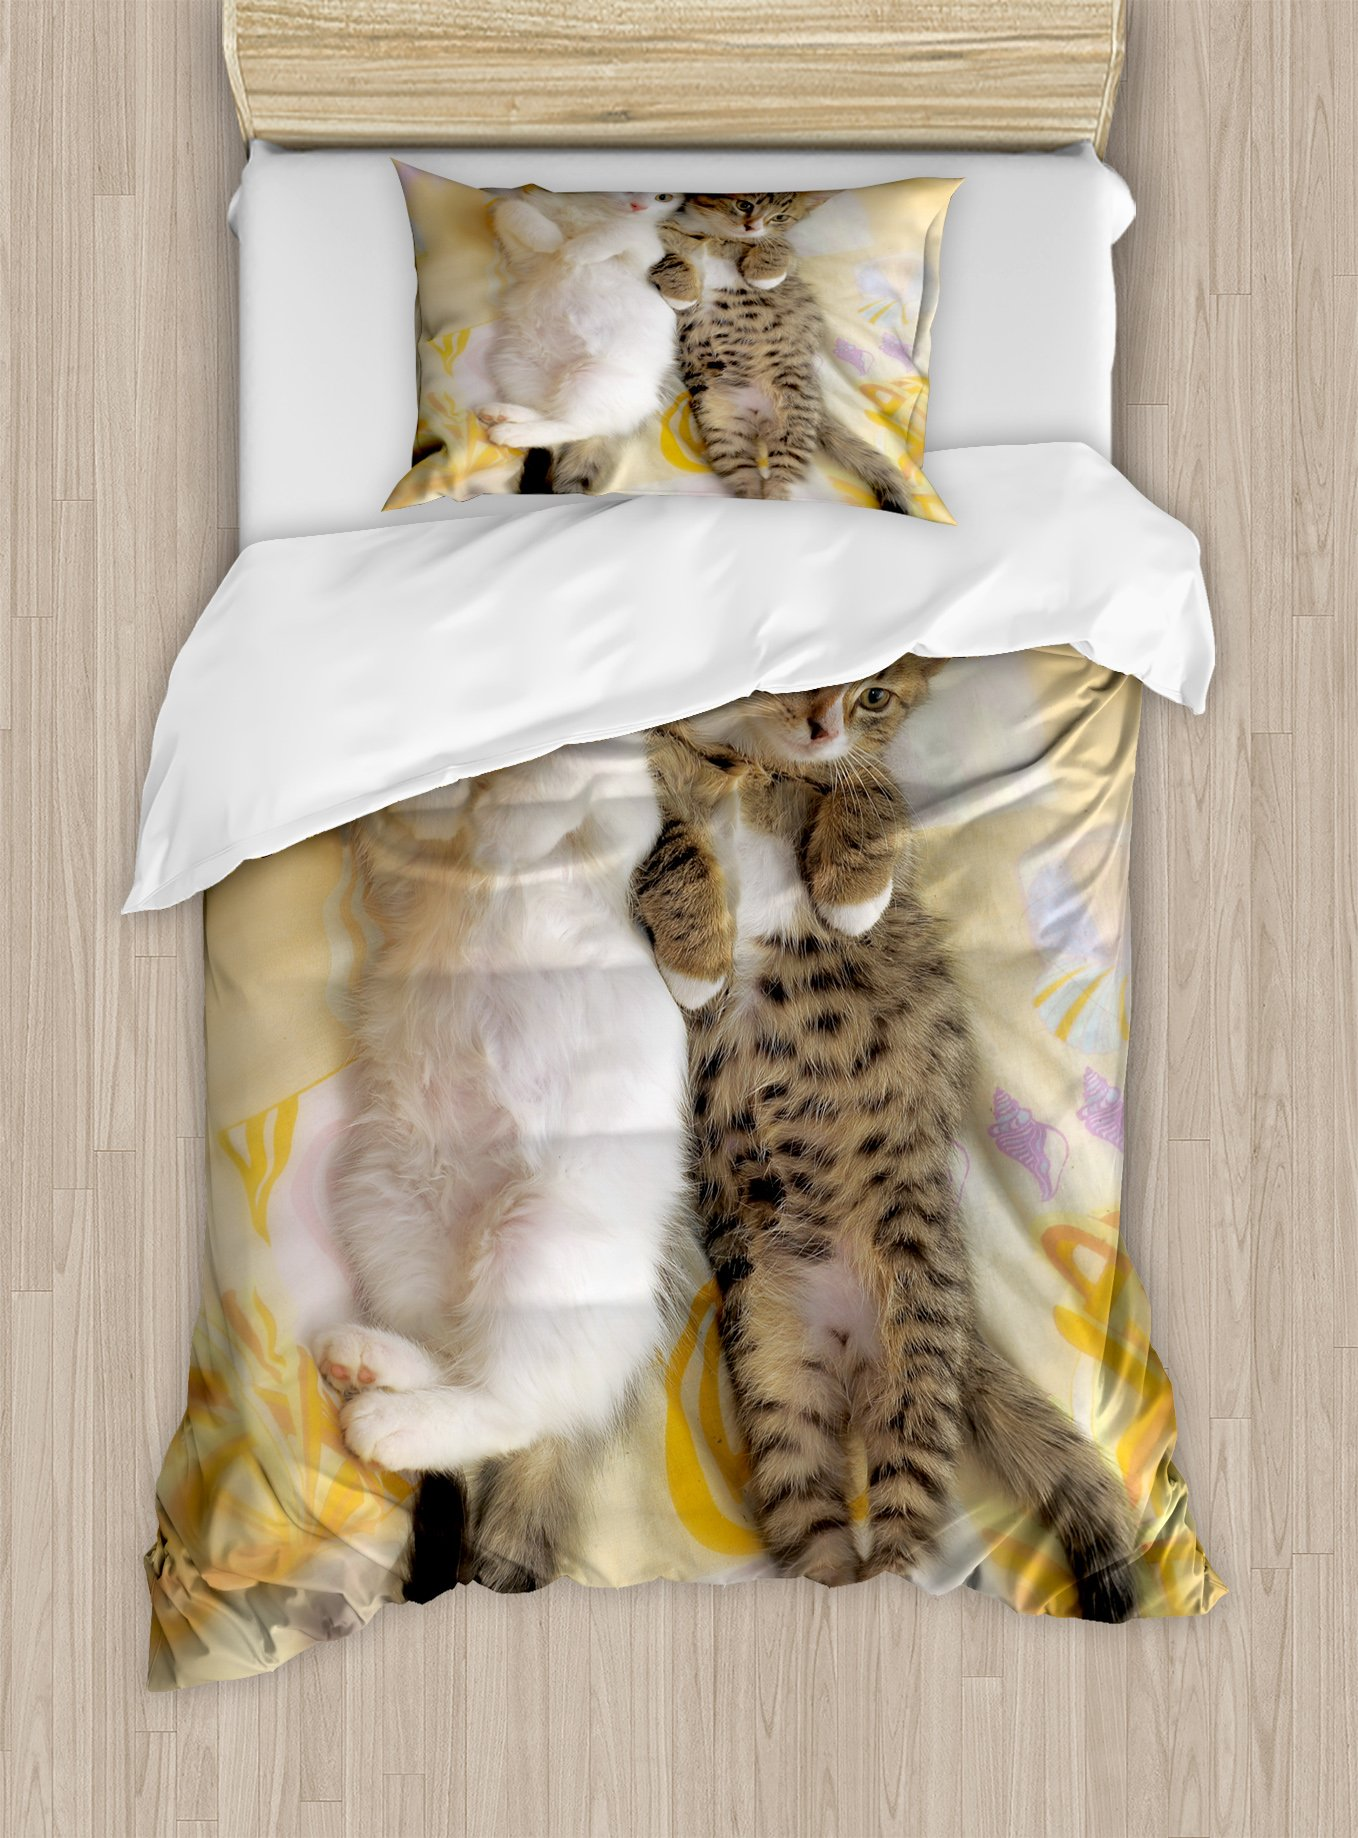 Ambesonne Funny Duvet Cover Set Twin Size, Kitten Siblings Lying Beside Sleepy Heads Cat Pet Animal Lovers Best Friends Image, Decorative 2 Piece Bedding Set with 1 Pillow Sham, Multicolor